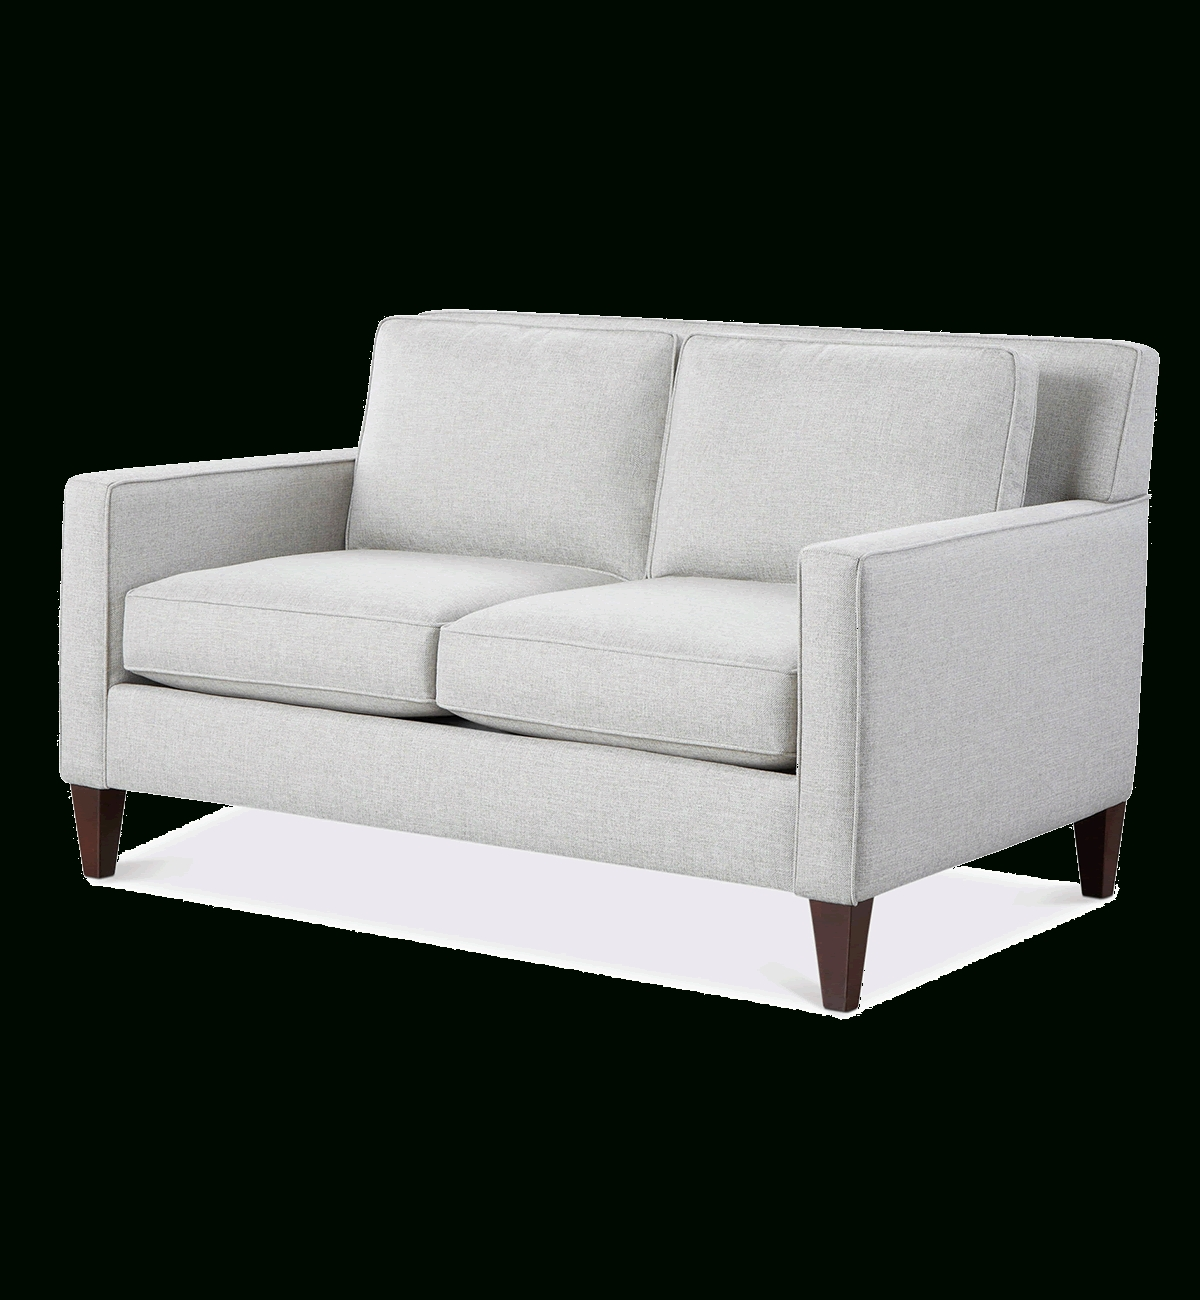 White Sofa Chairs For Best And Newest White Couches And Sofas – Macy's (View 12 of 20)